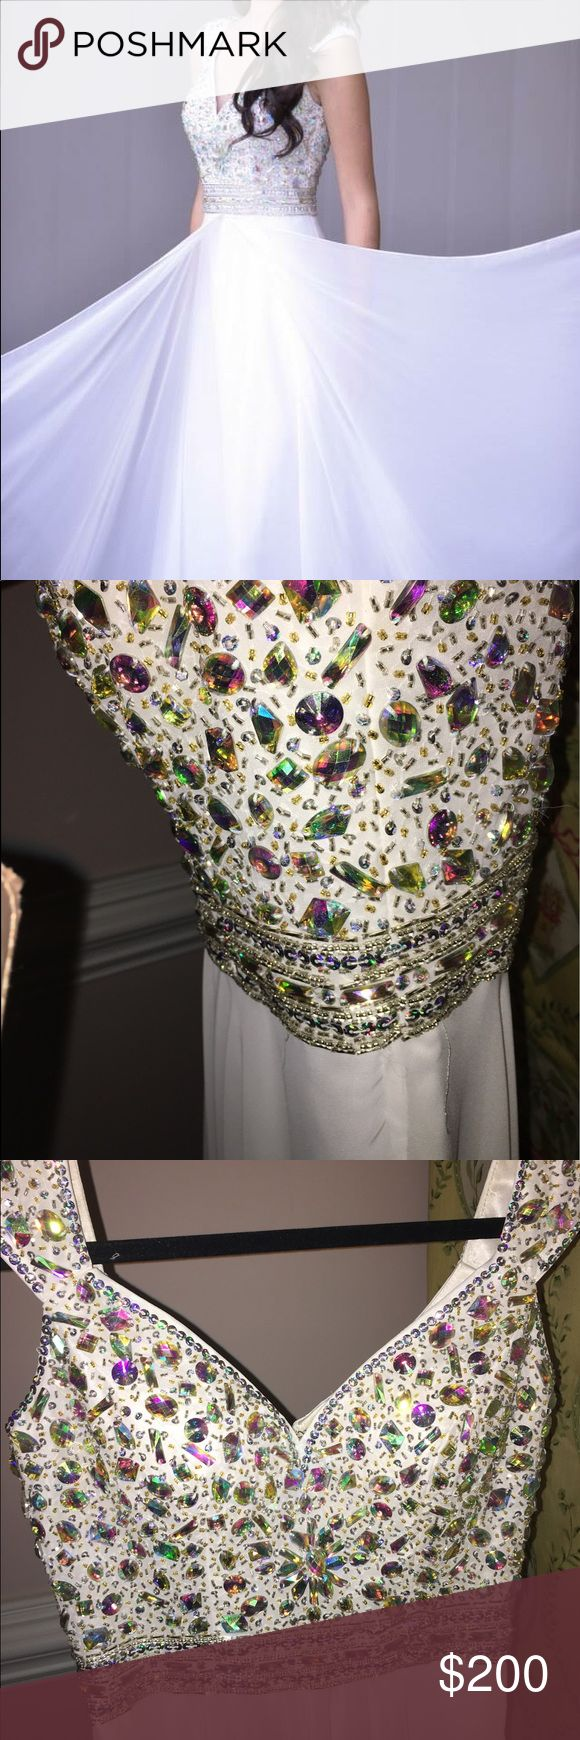 pageant/prom dress, no damages/stains/rips Panoply pageant/prom dress, with AB stones, a split down the front. A V-shaped neck line, with straps that have AB stones on them. panoply Dresses Prom